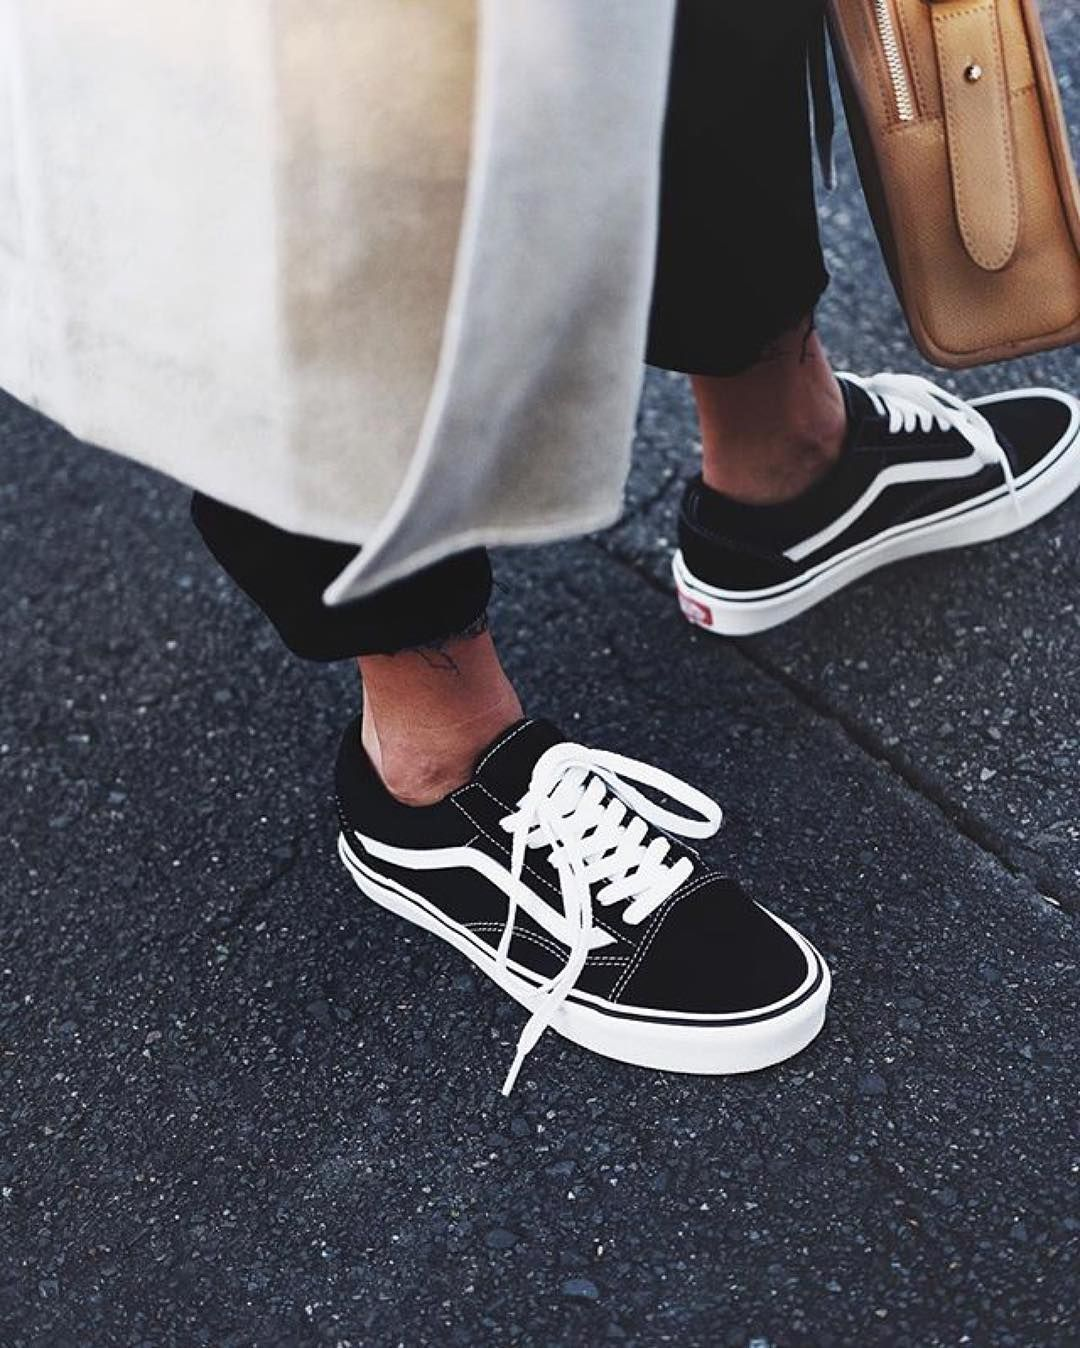 fa50553550 Sneakers femme - Vans Old Skool (©andicsinger)  streestyle  vans  shoes